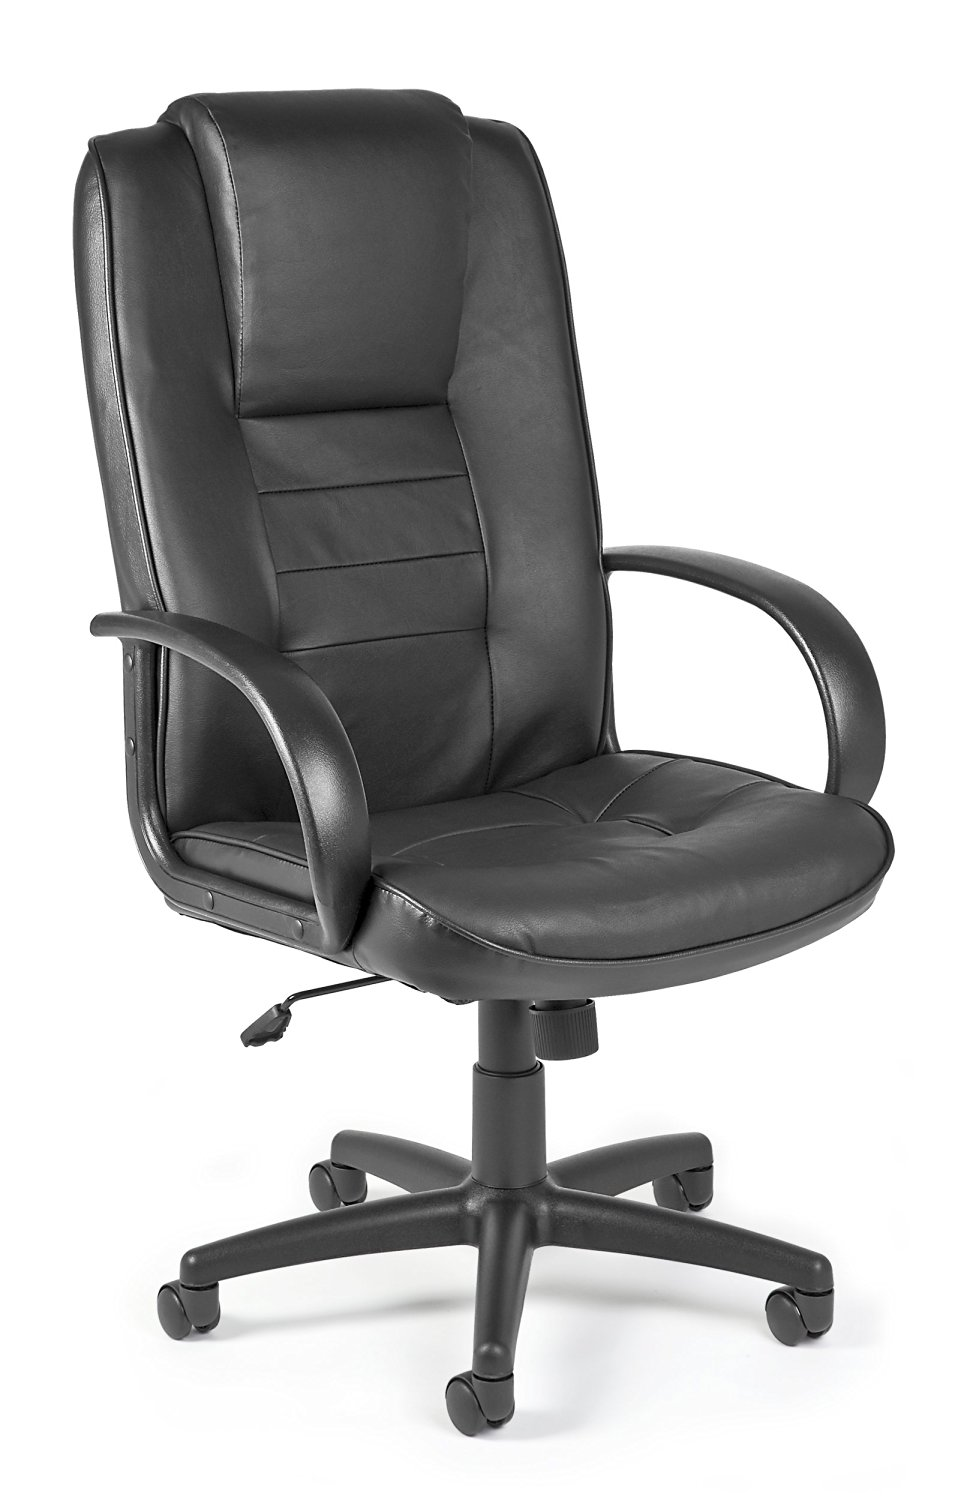 OFM 500-L Promo Hi-Back Leather Chair, Black